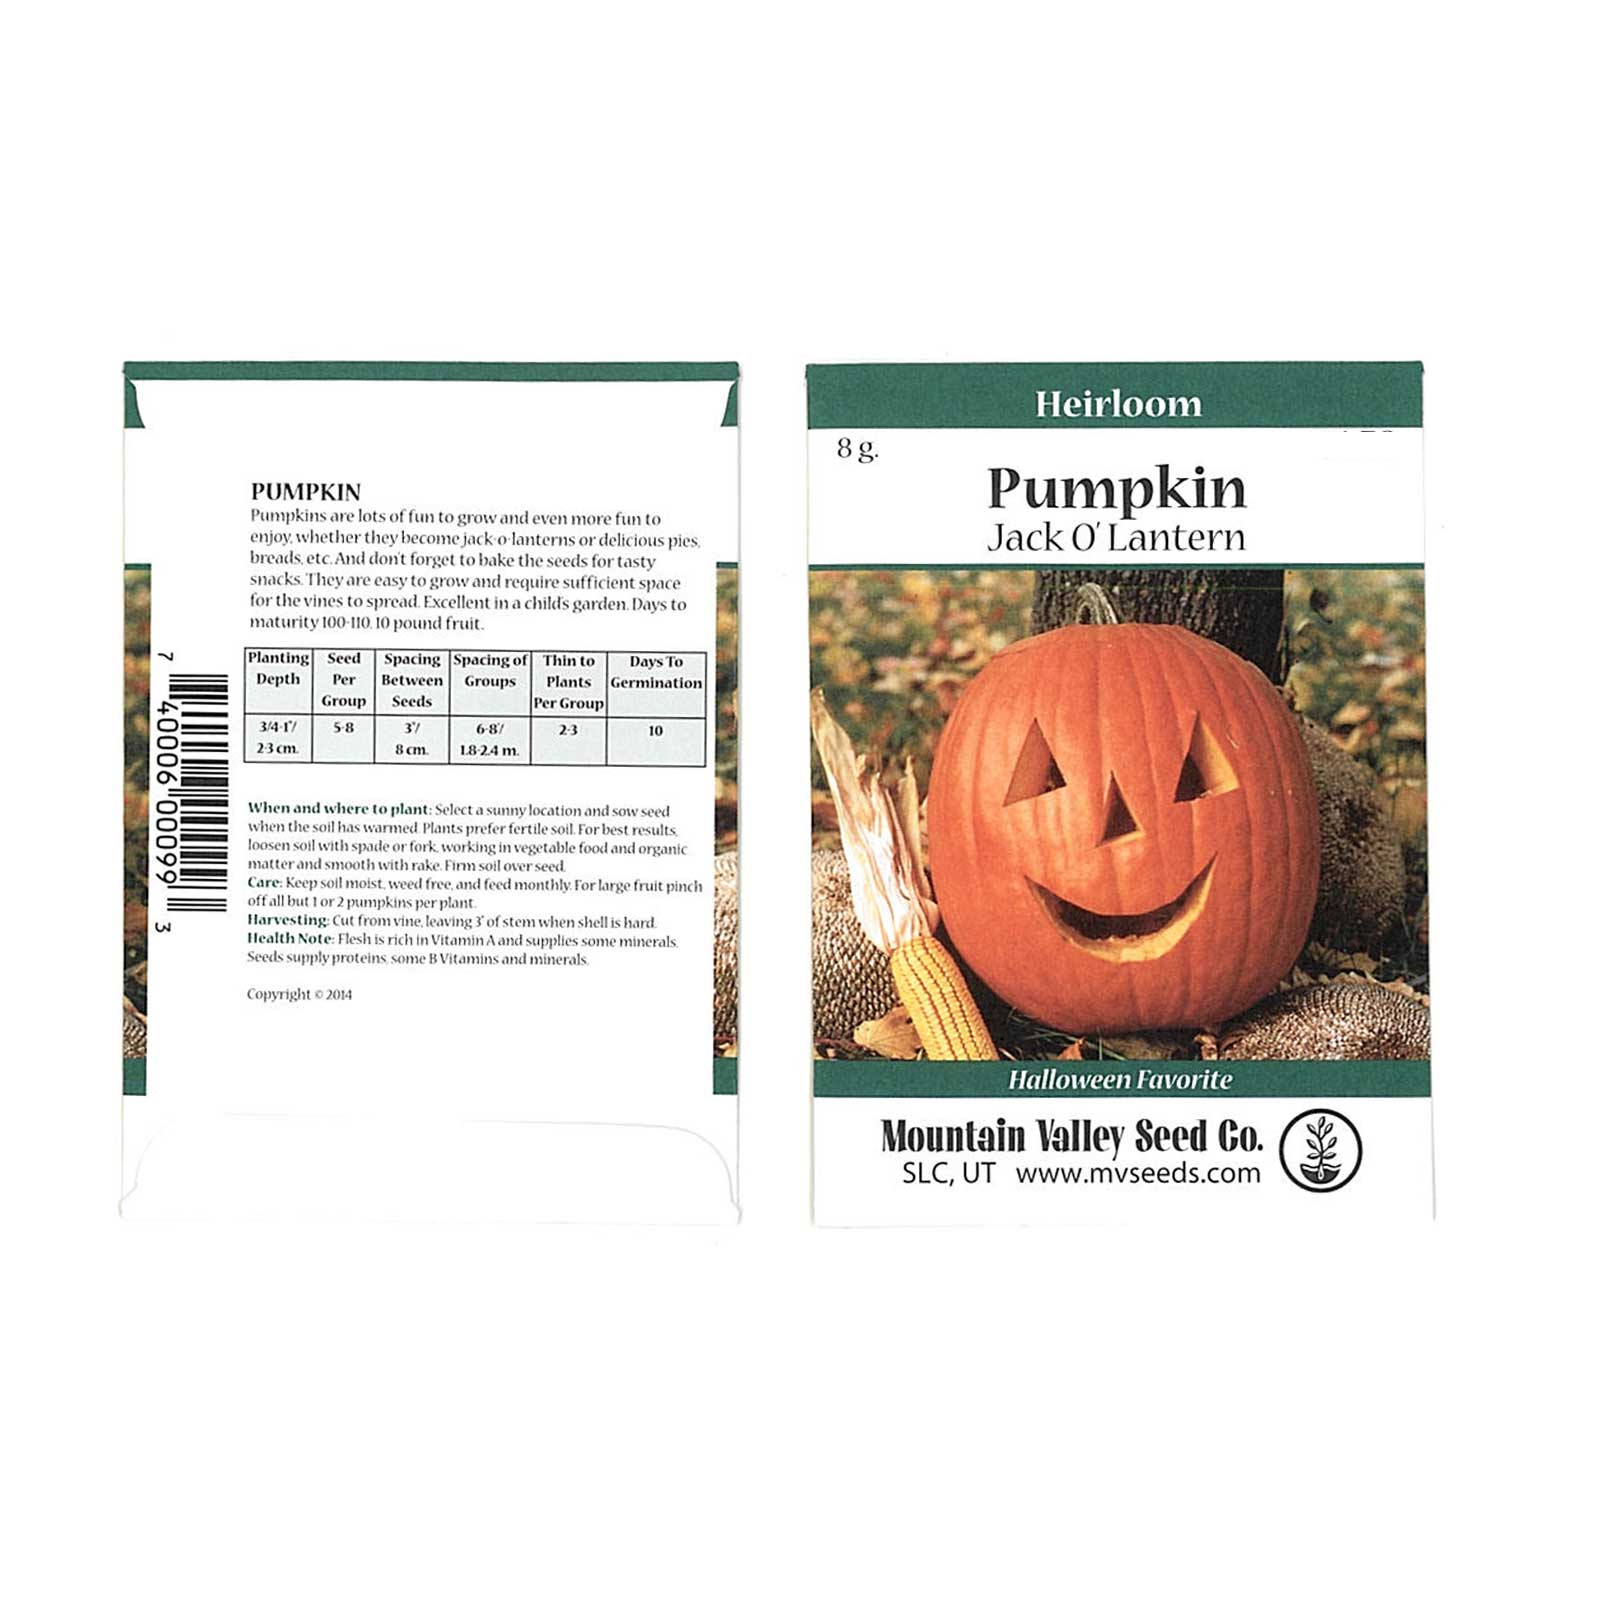 Pumpkin Garden Seeds - Jack O'Lantern Variety - 8 Gram Packet - Non-GMO, Heirloom Pumpkins - Orange - Vegetable Gardening Seeds